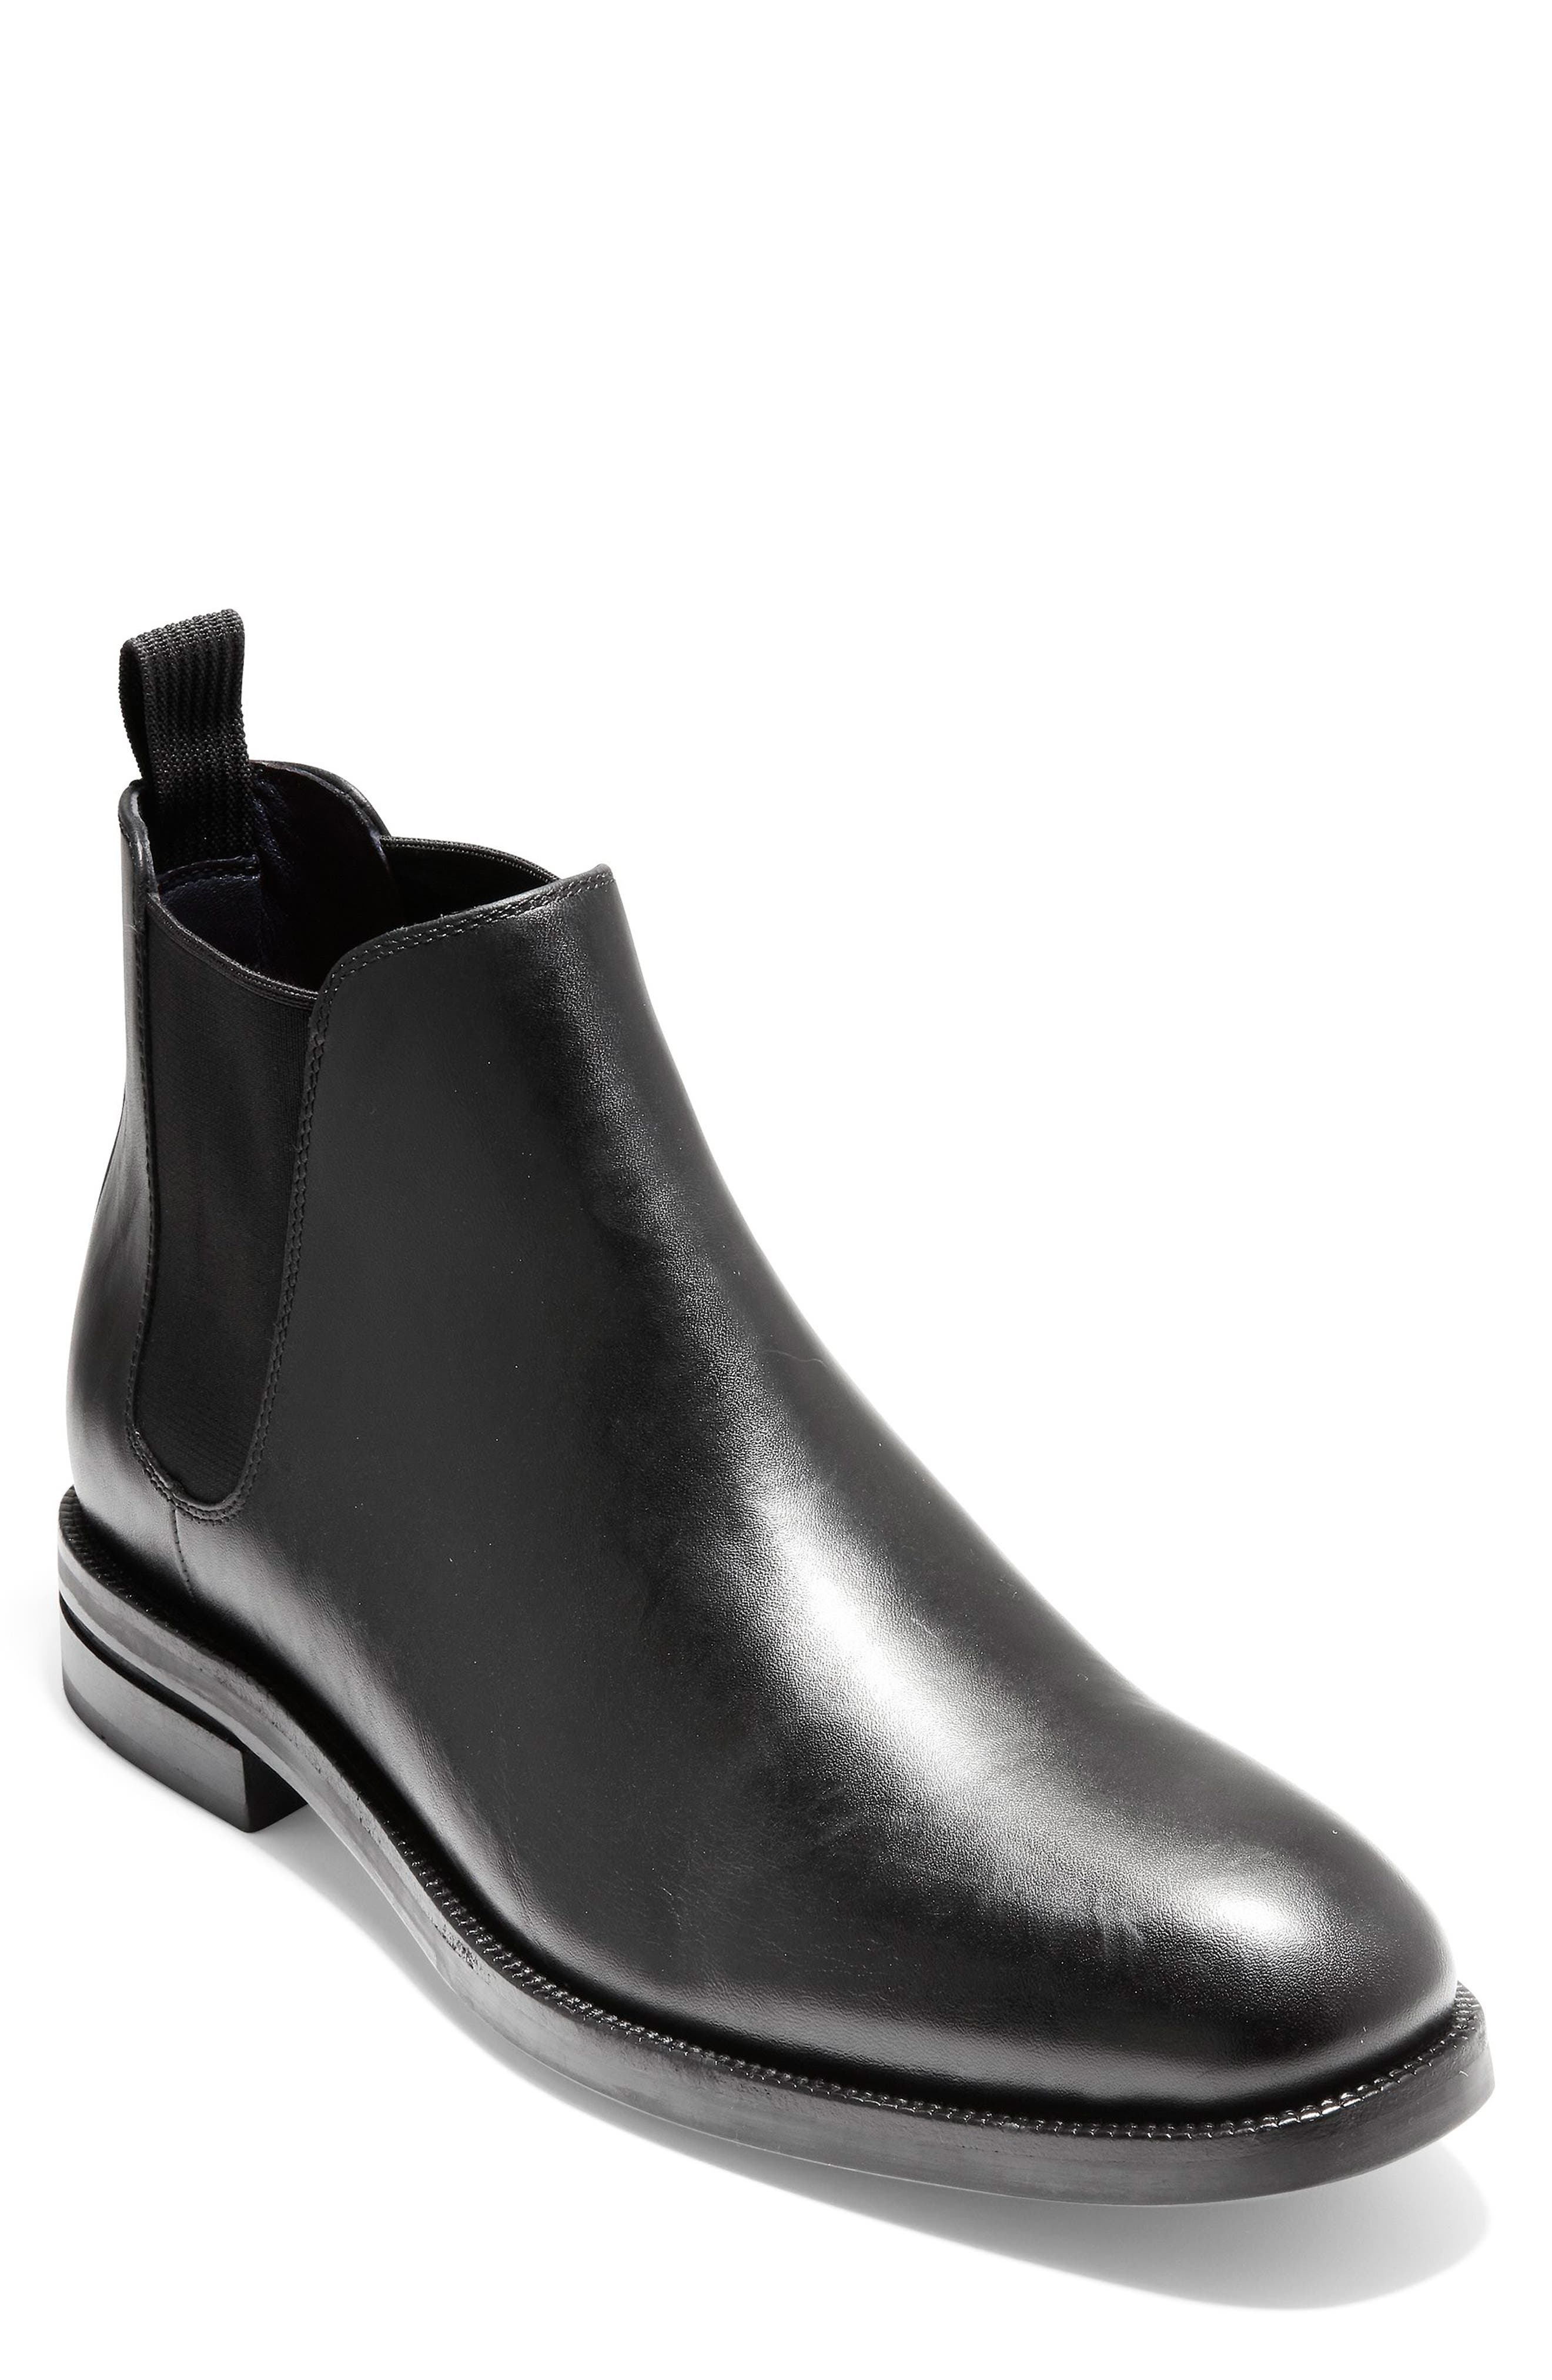 COLE HAAN, Wakefield Grand Chelsea Boot, Main thumbnail 1, color, BLACK LEATHER